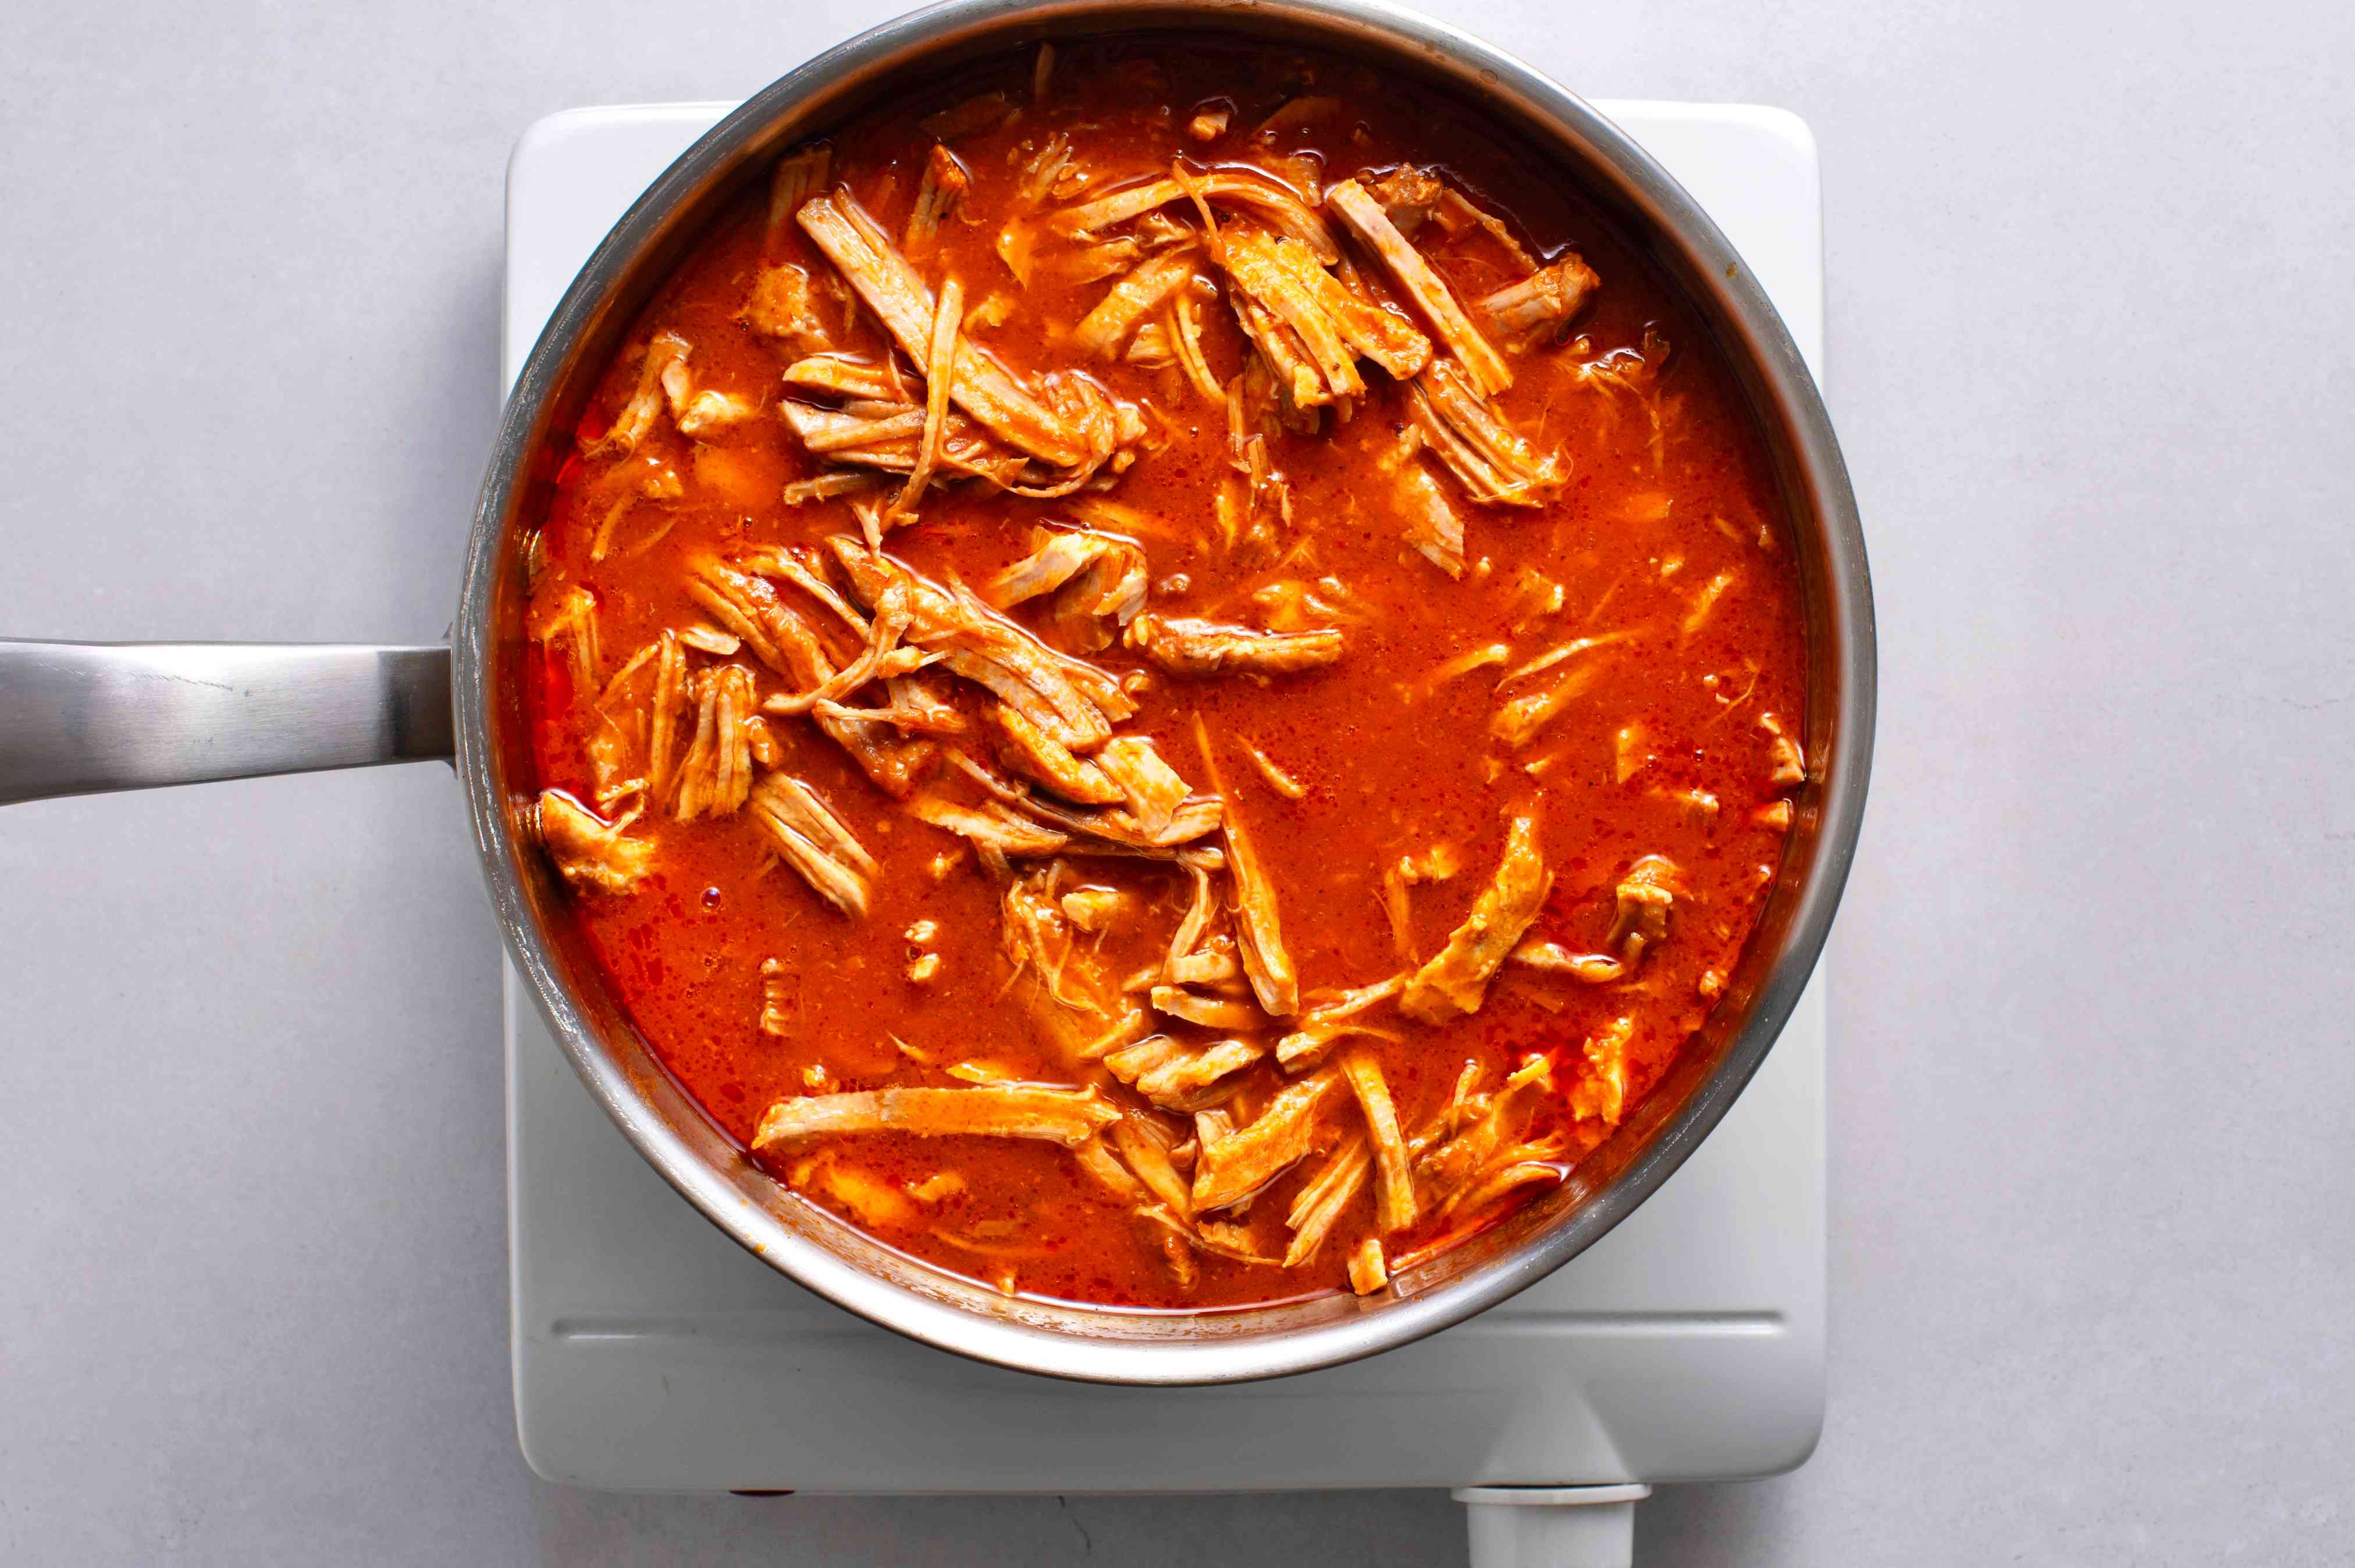 shredded pork with sauce in the pot